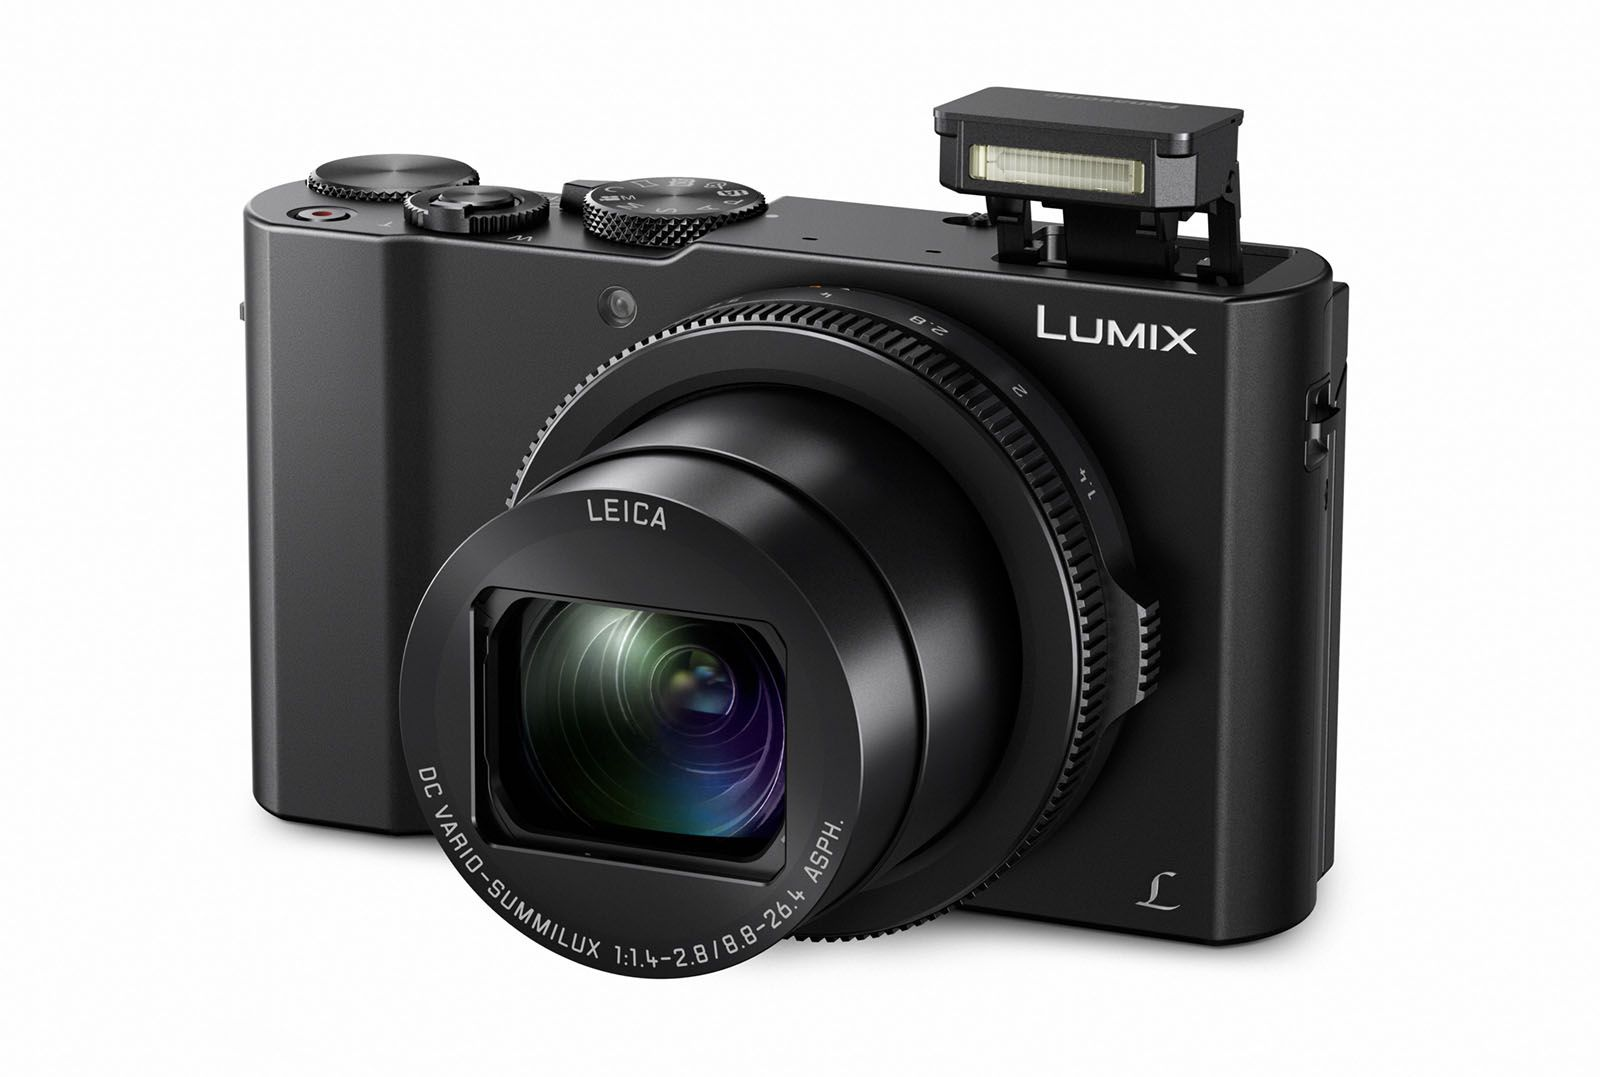 Panasonic Rolls Out The 4k Full Metal Lx10 Compact Camera With Images Compact Camera Point And Shoot Camera Digital Camera